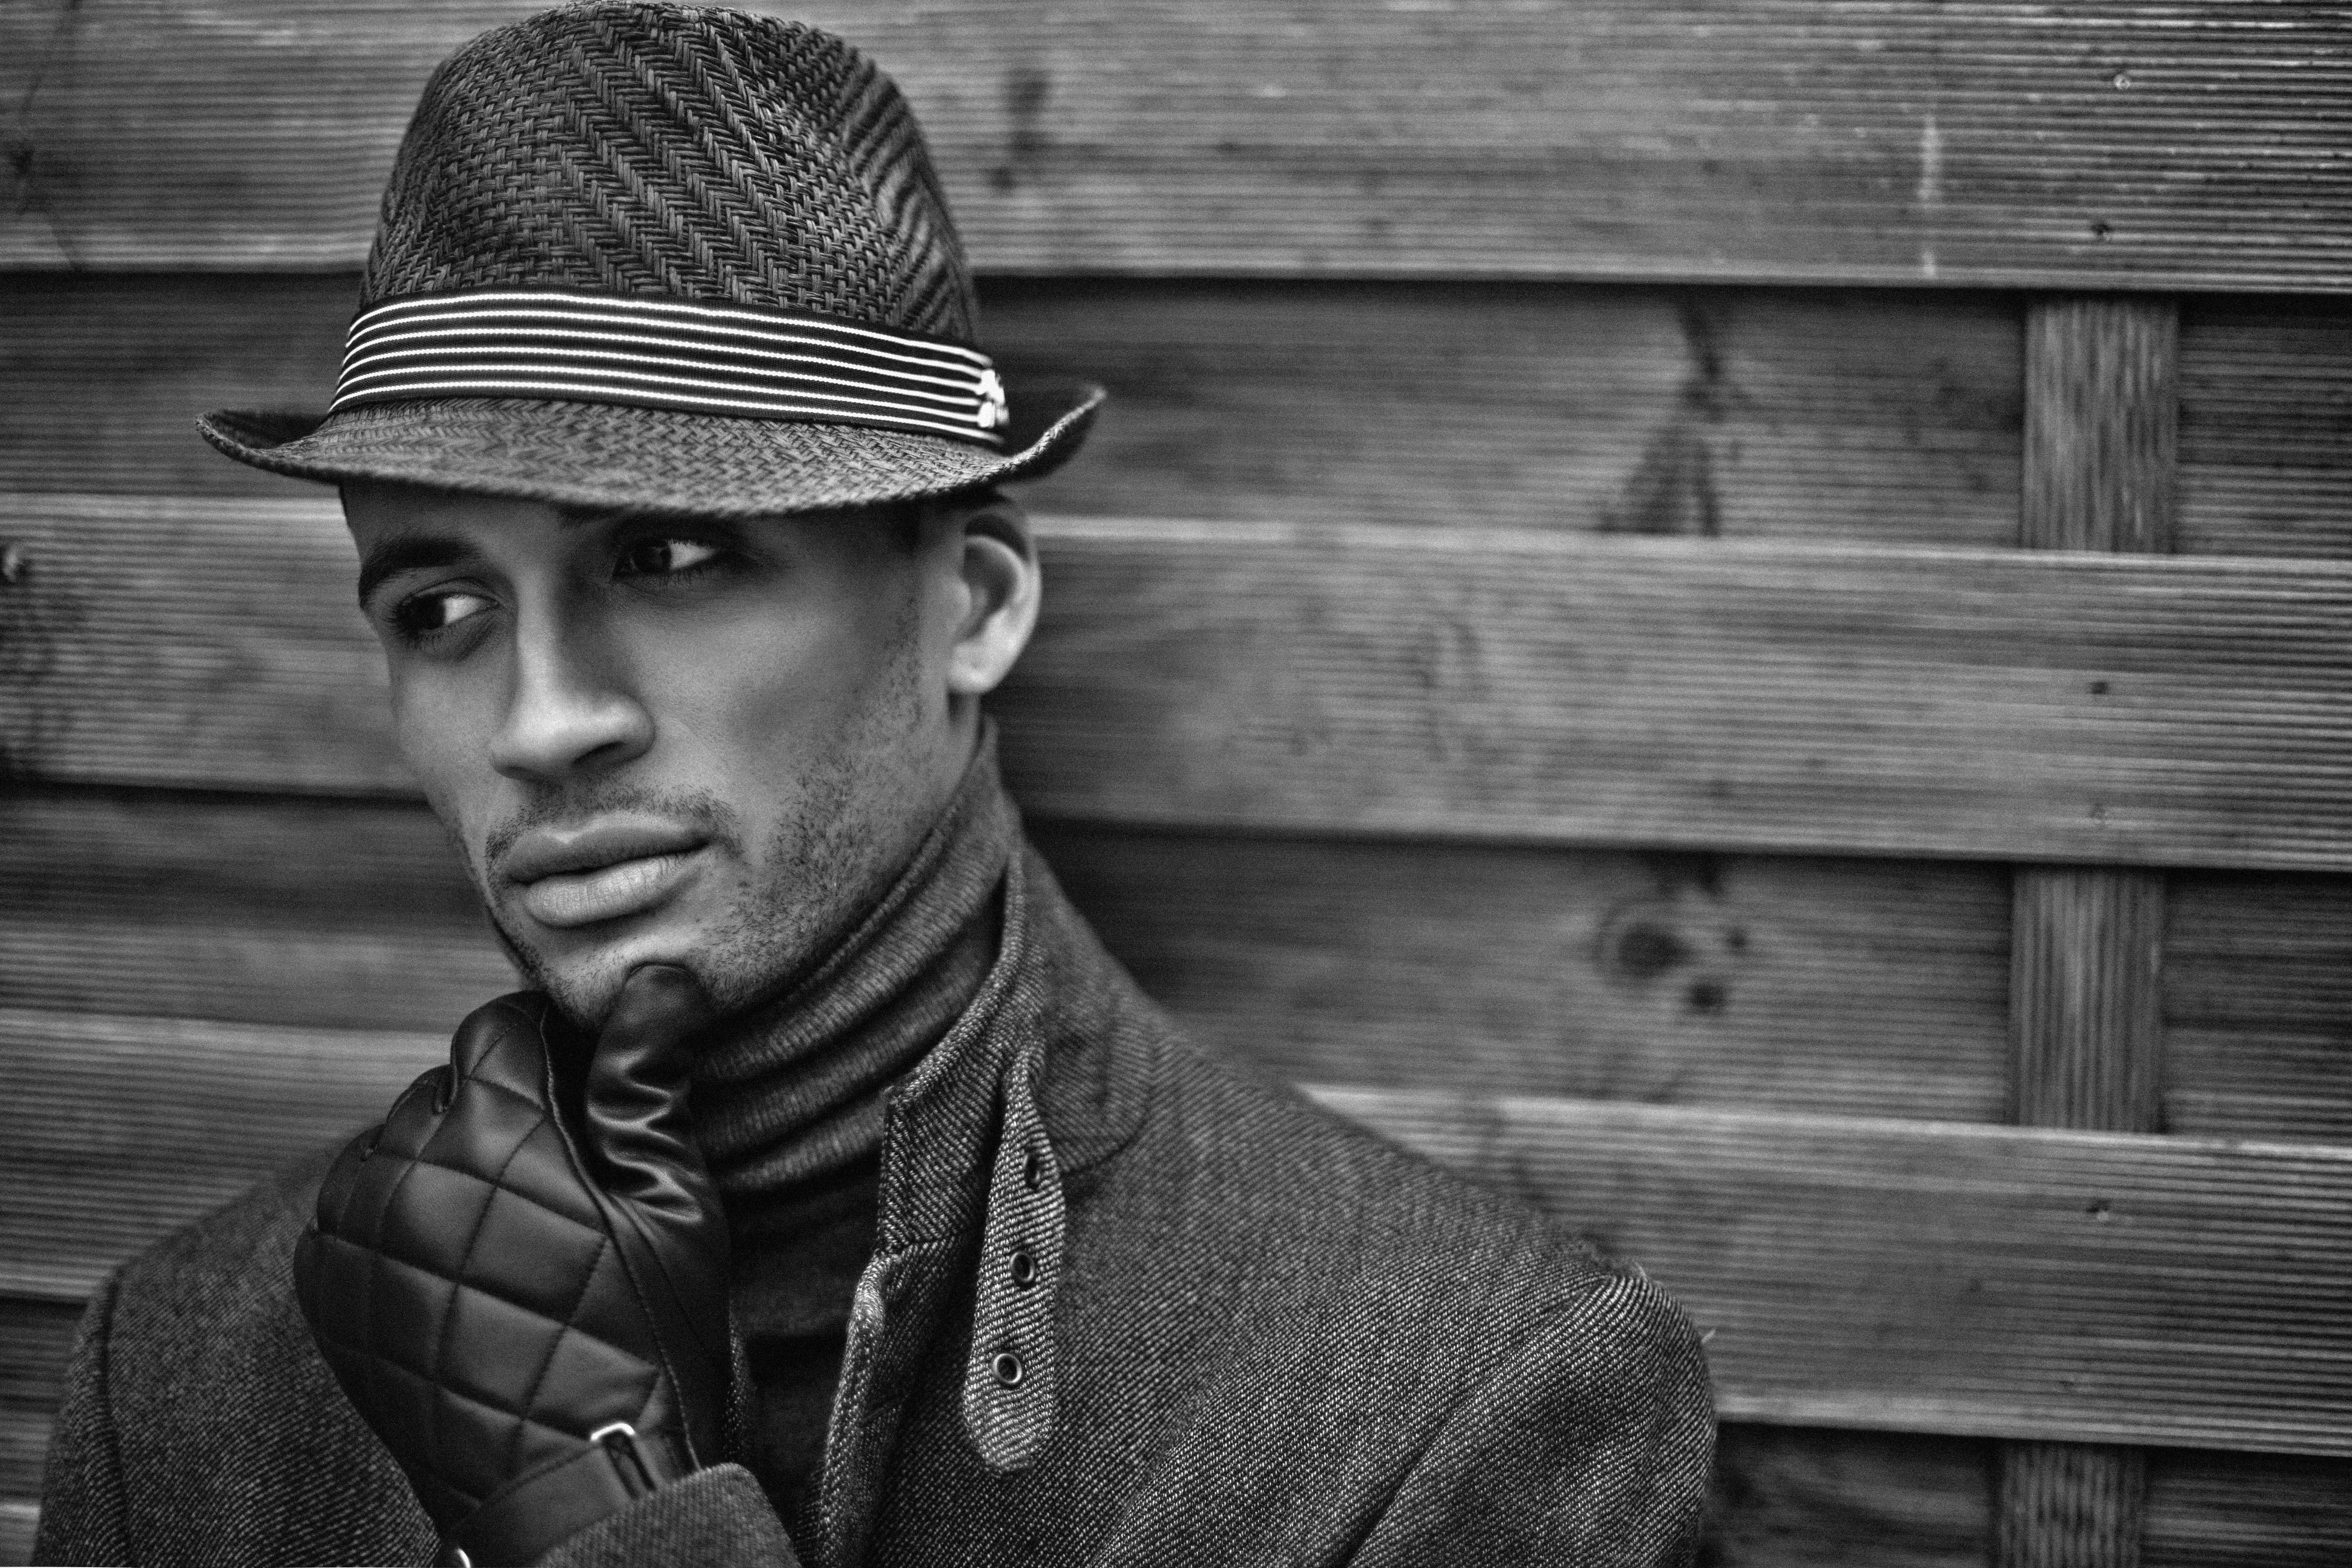 Man Wearing Black Hat and Gloves, Black and white, Portrait, Wood, Wear, HQ Photo